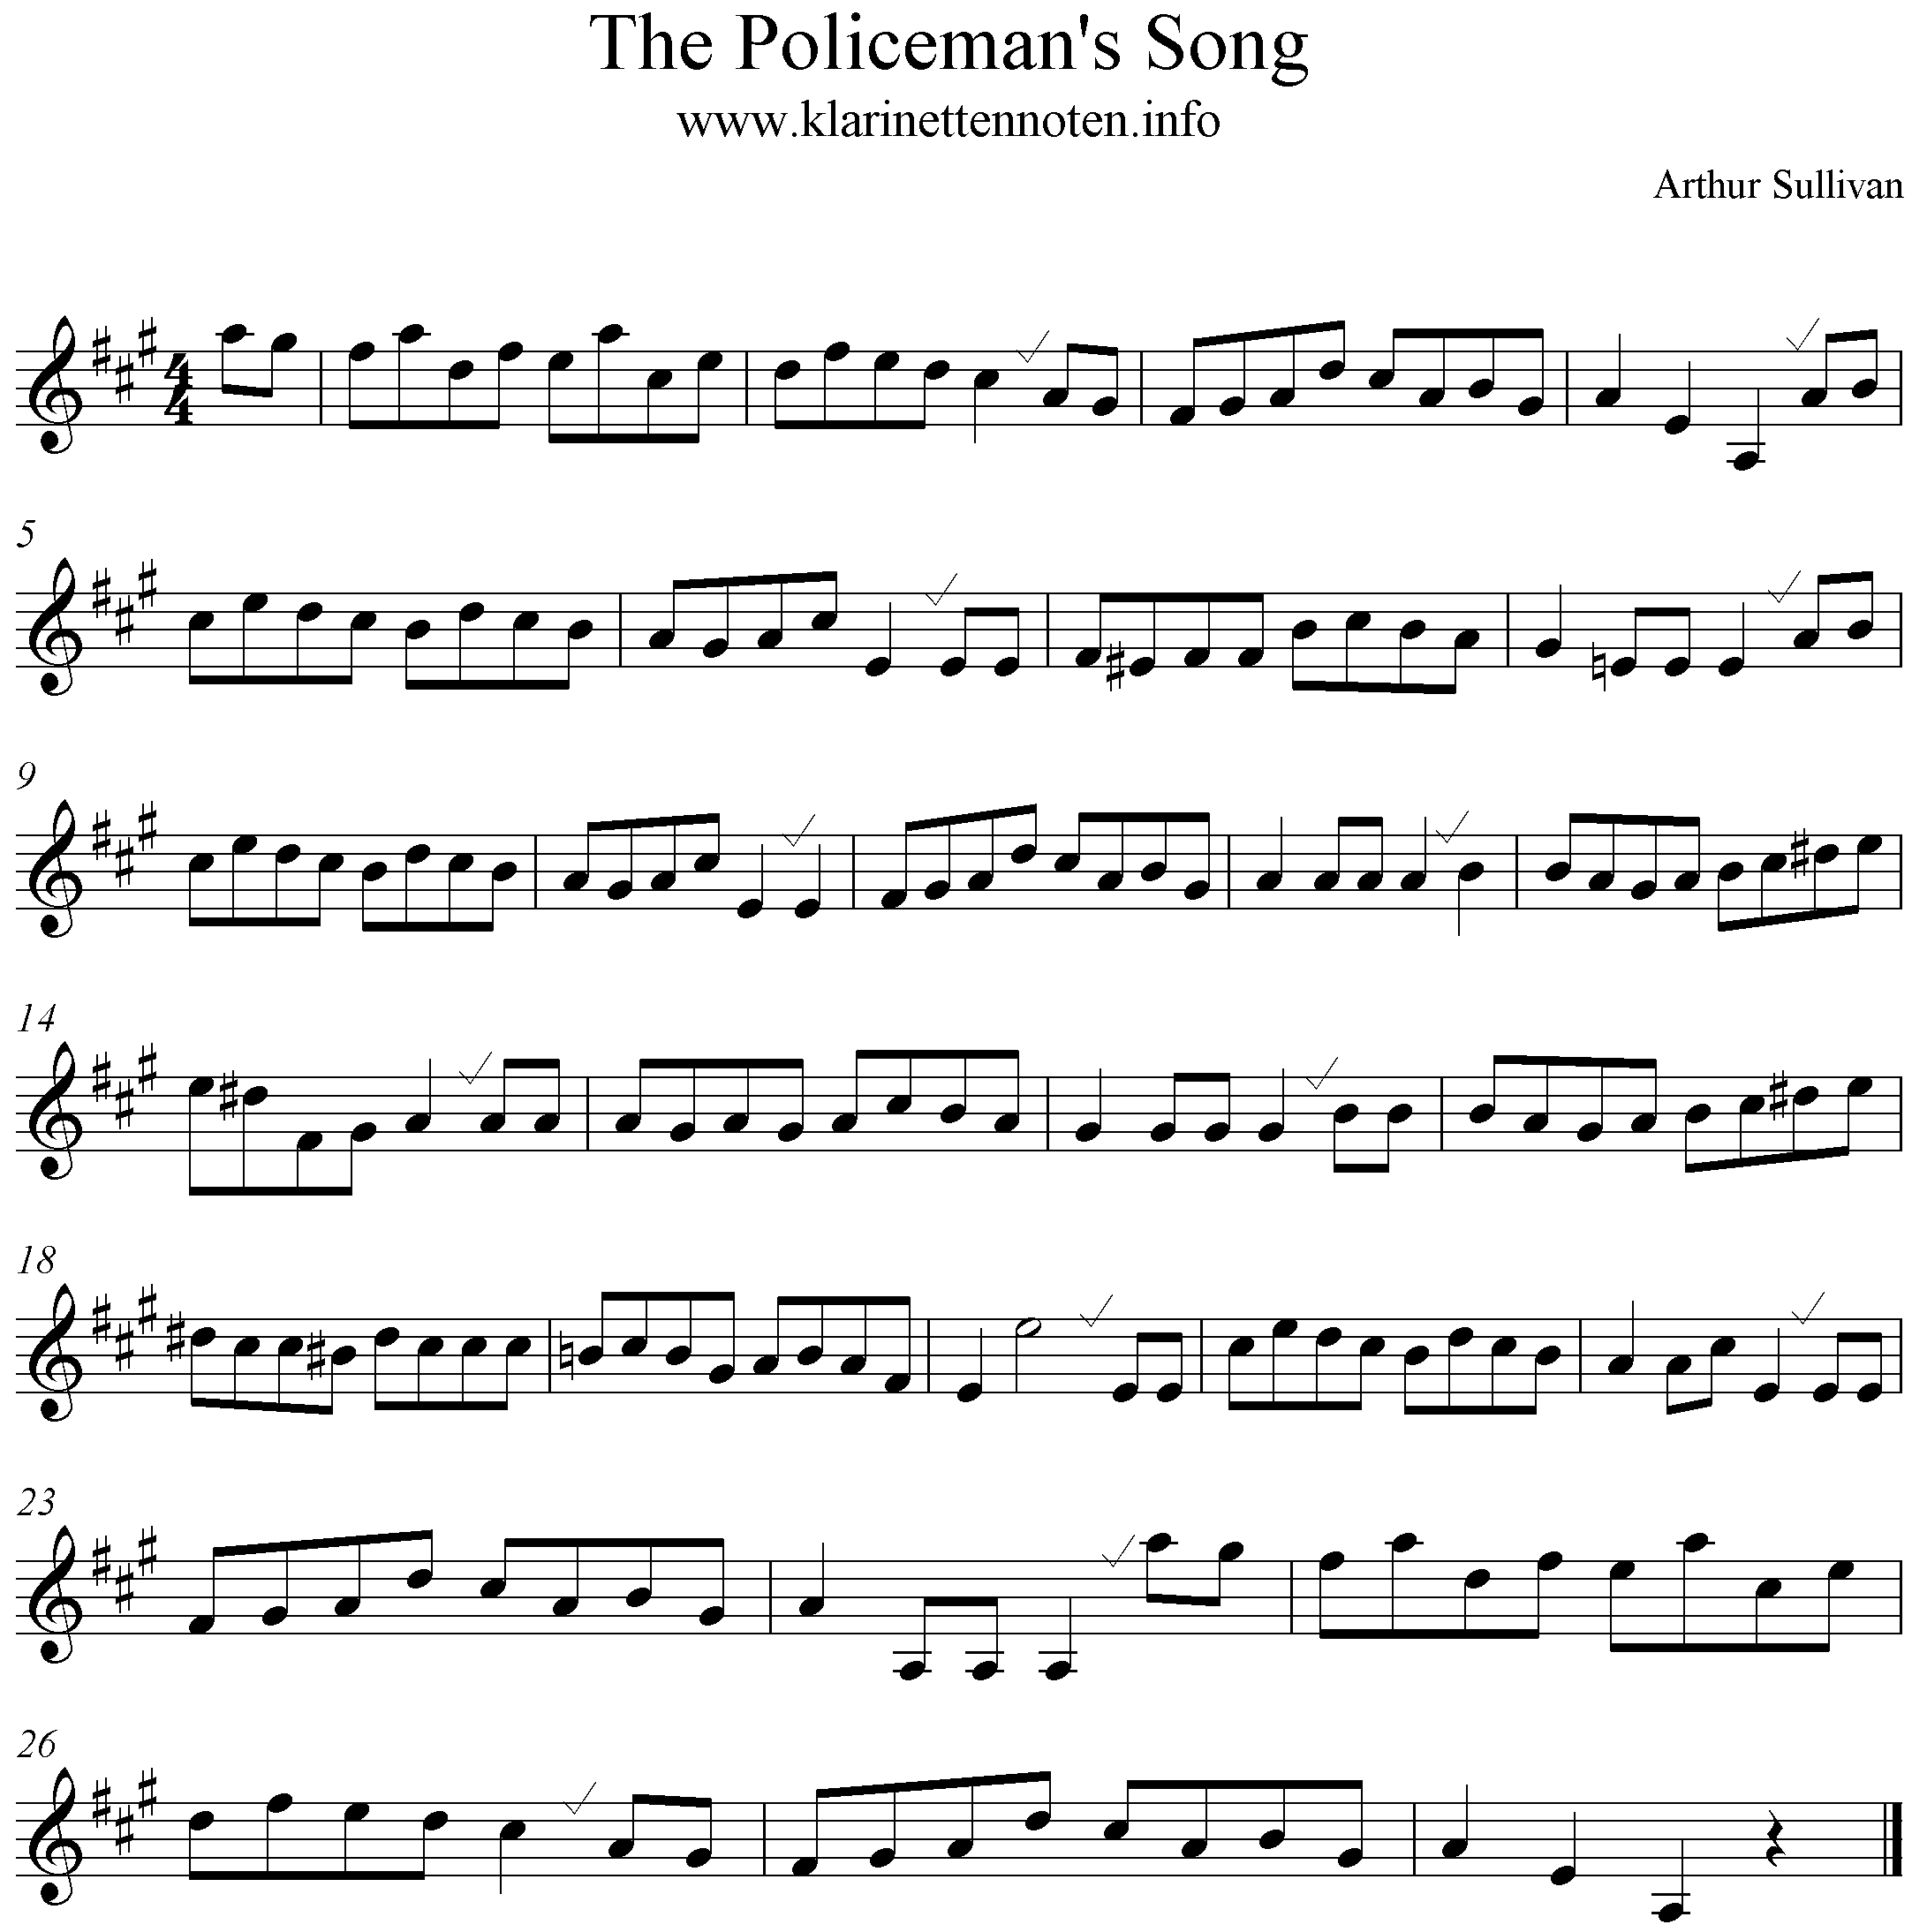 The Policemans Song, Sullivan, A-Major